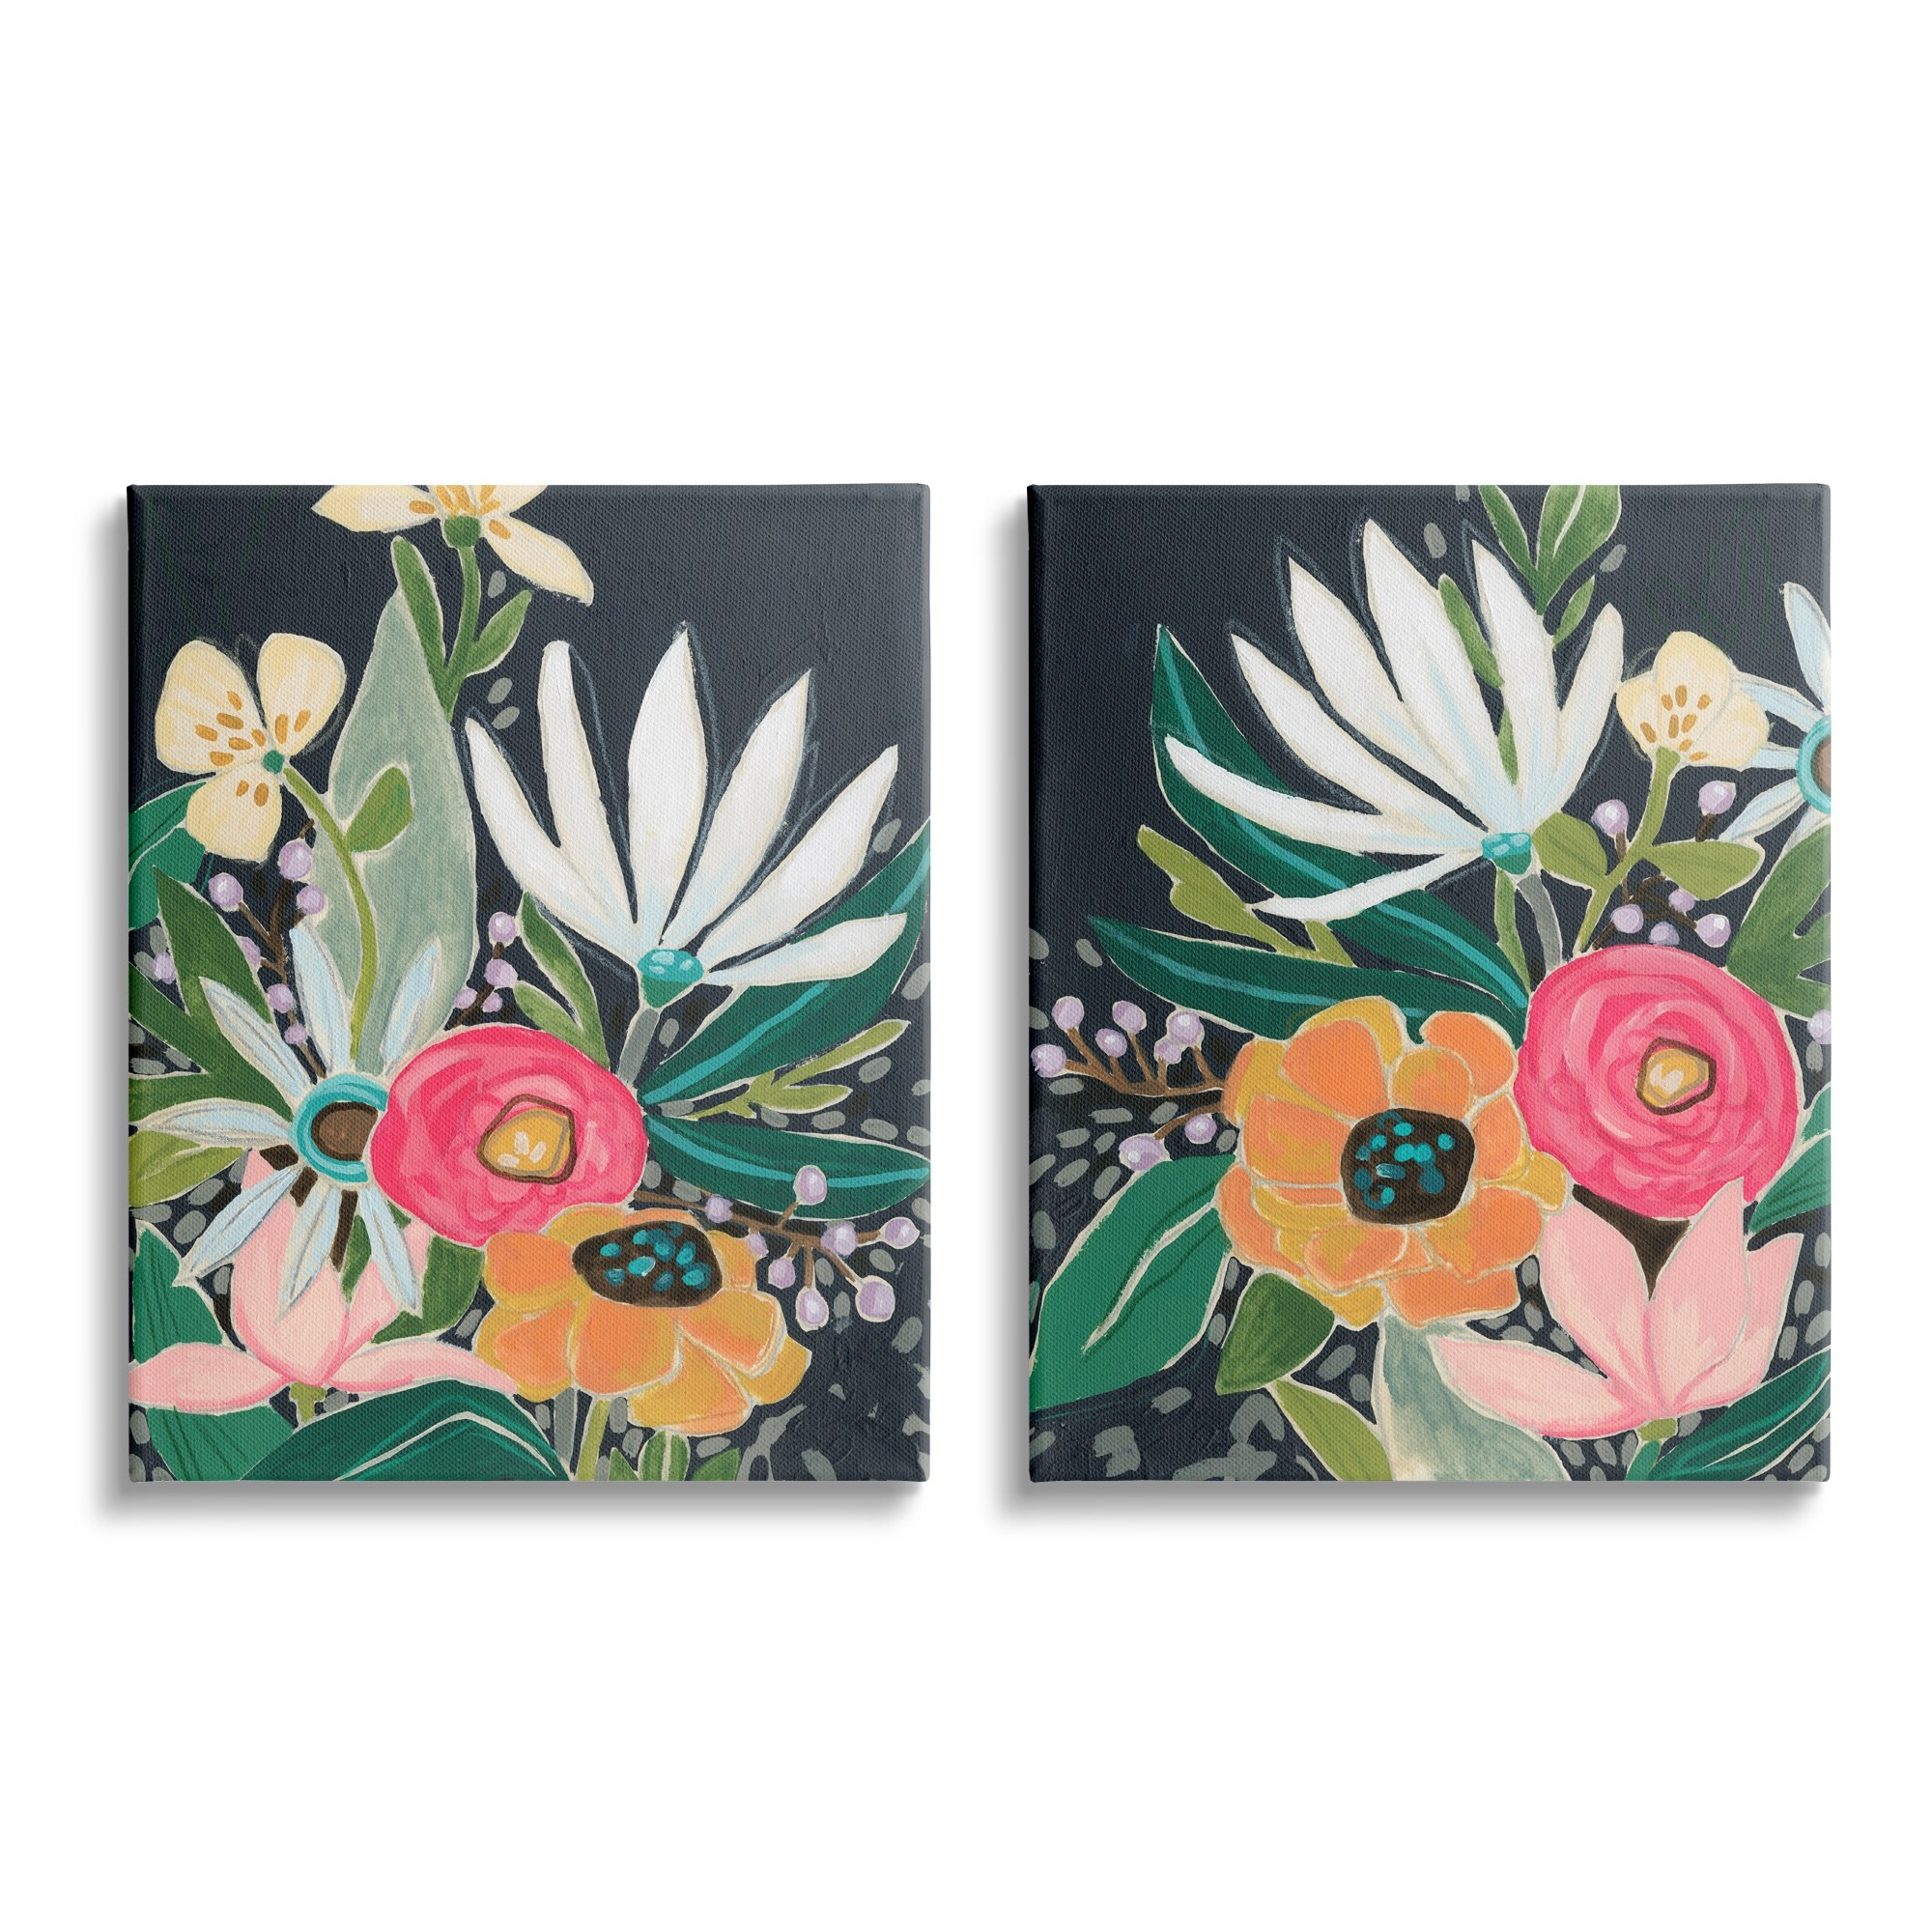 Whimsical Flower Wall Décor Within Preferred Stupell Industries Abstract Tropical Florals Whimsical Flower Petals Canvas Wall Art (View 18 of 20)